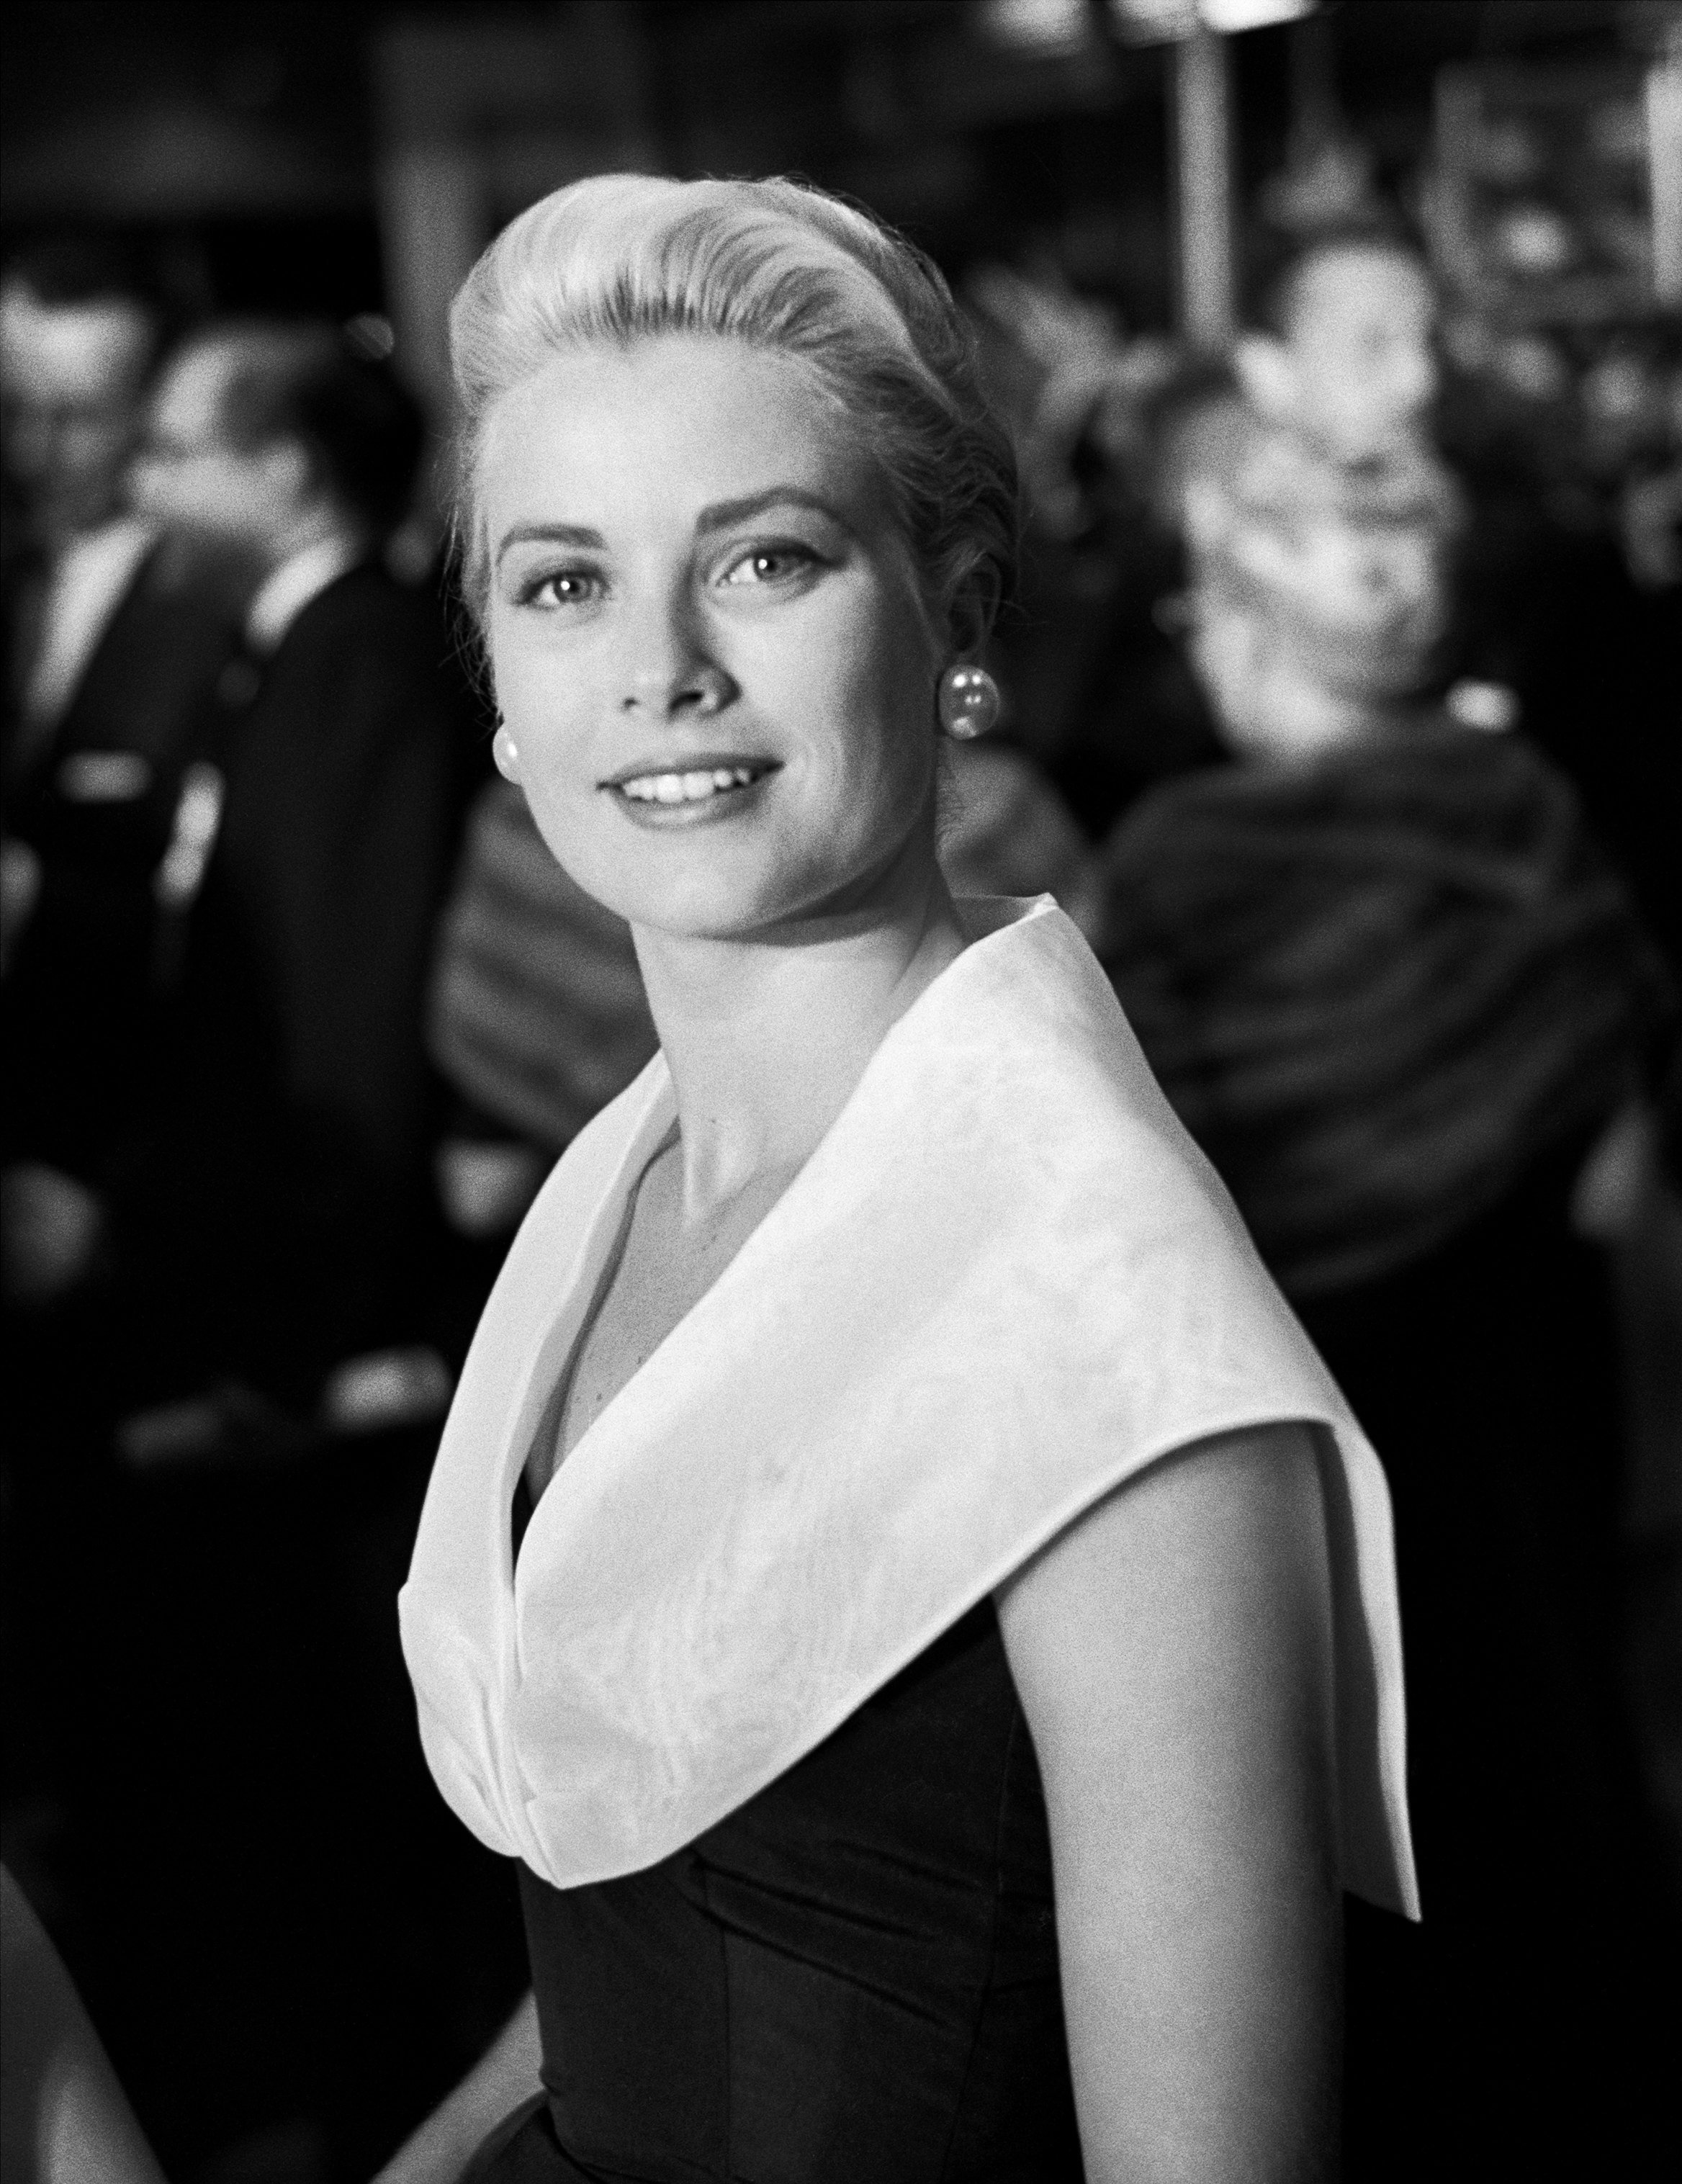 Grace Kelly, Nov 12, 1929 I Image: Getty Images